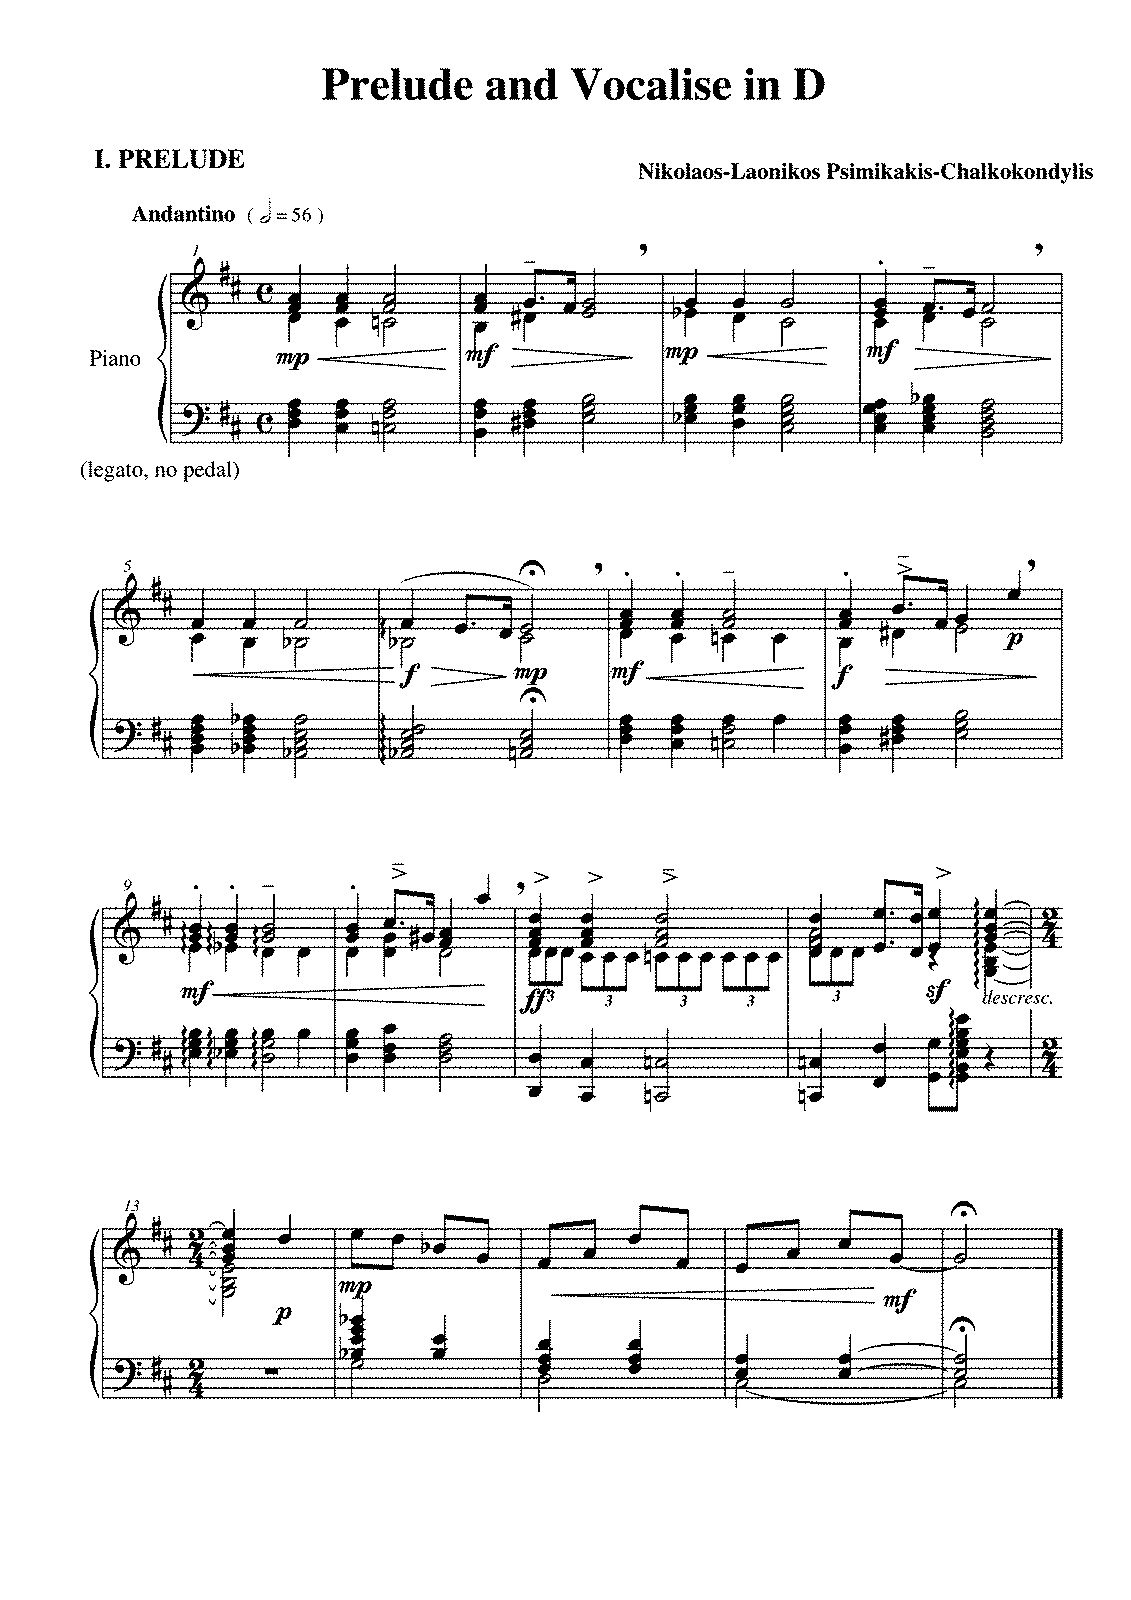 PMLP448714-Laonikos - Prelude and Vocalise in D.pdf